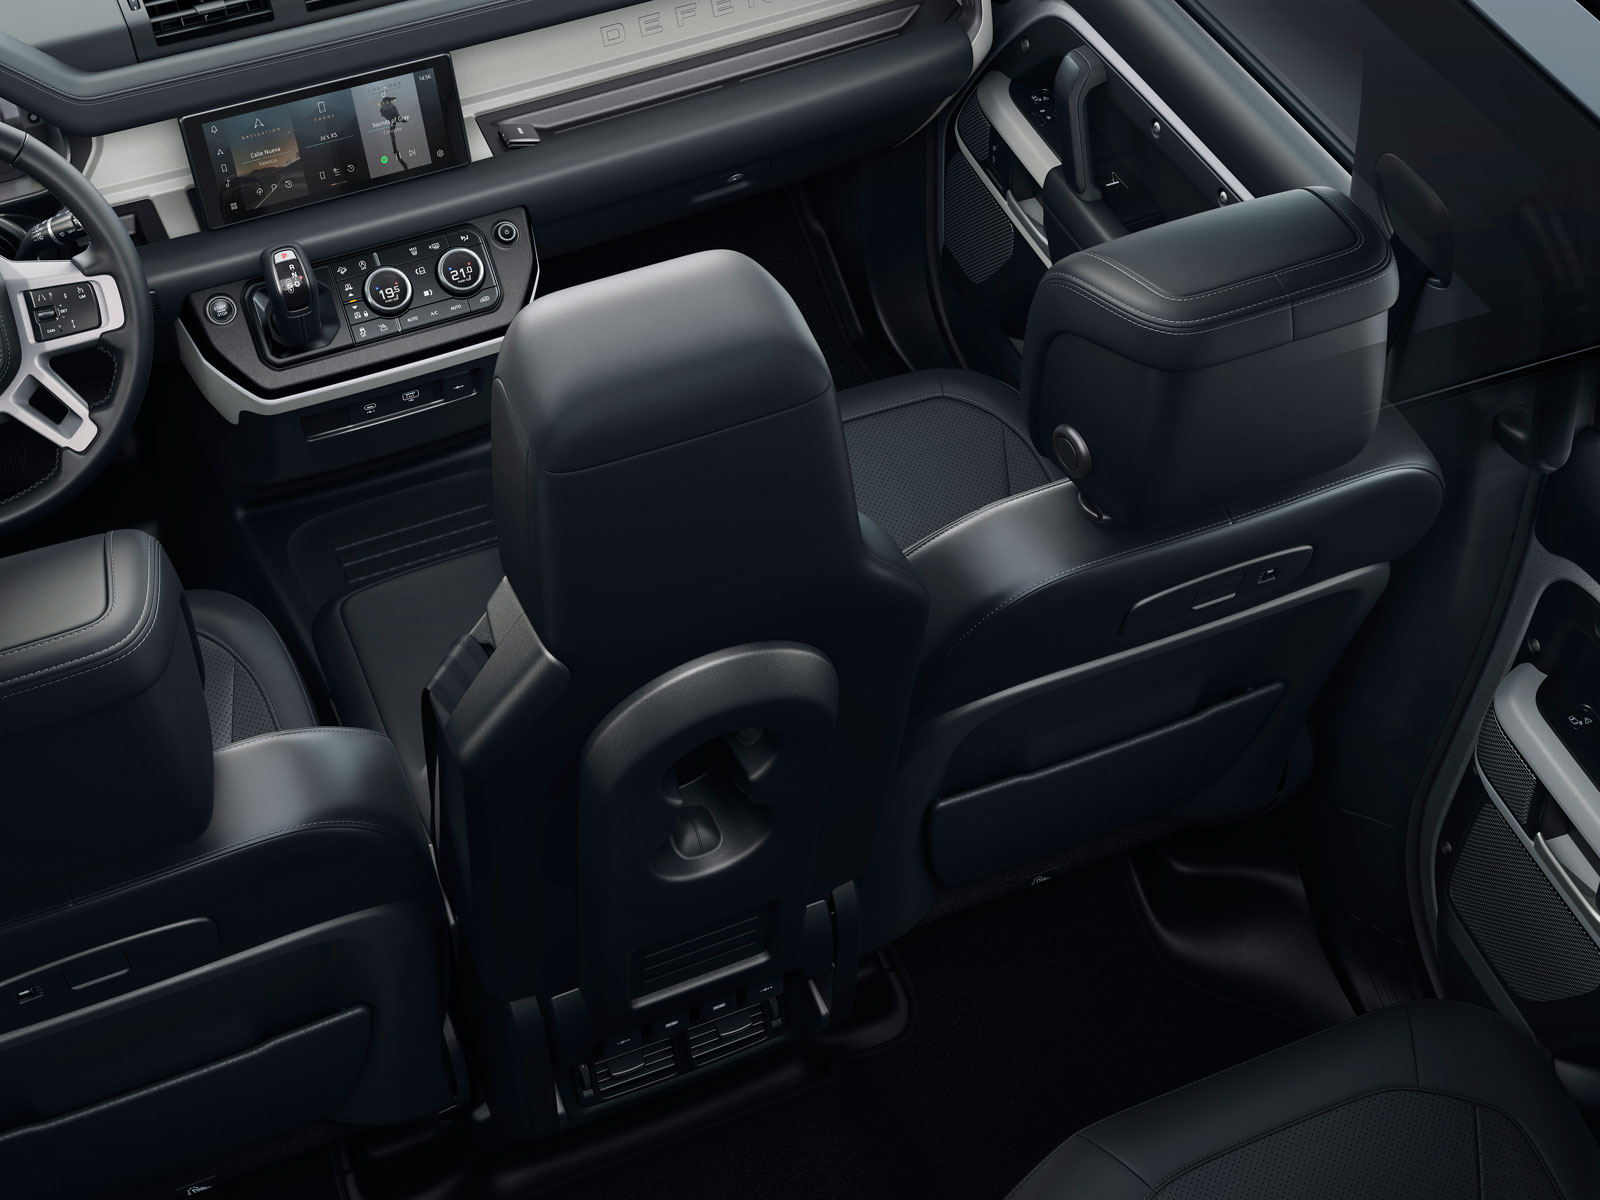 New Land Rover Defender Interior Design